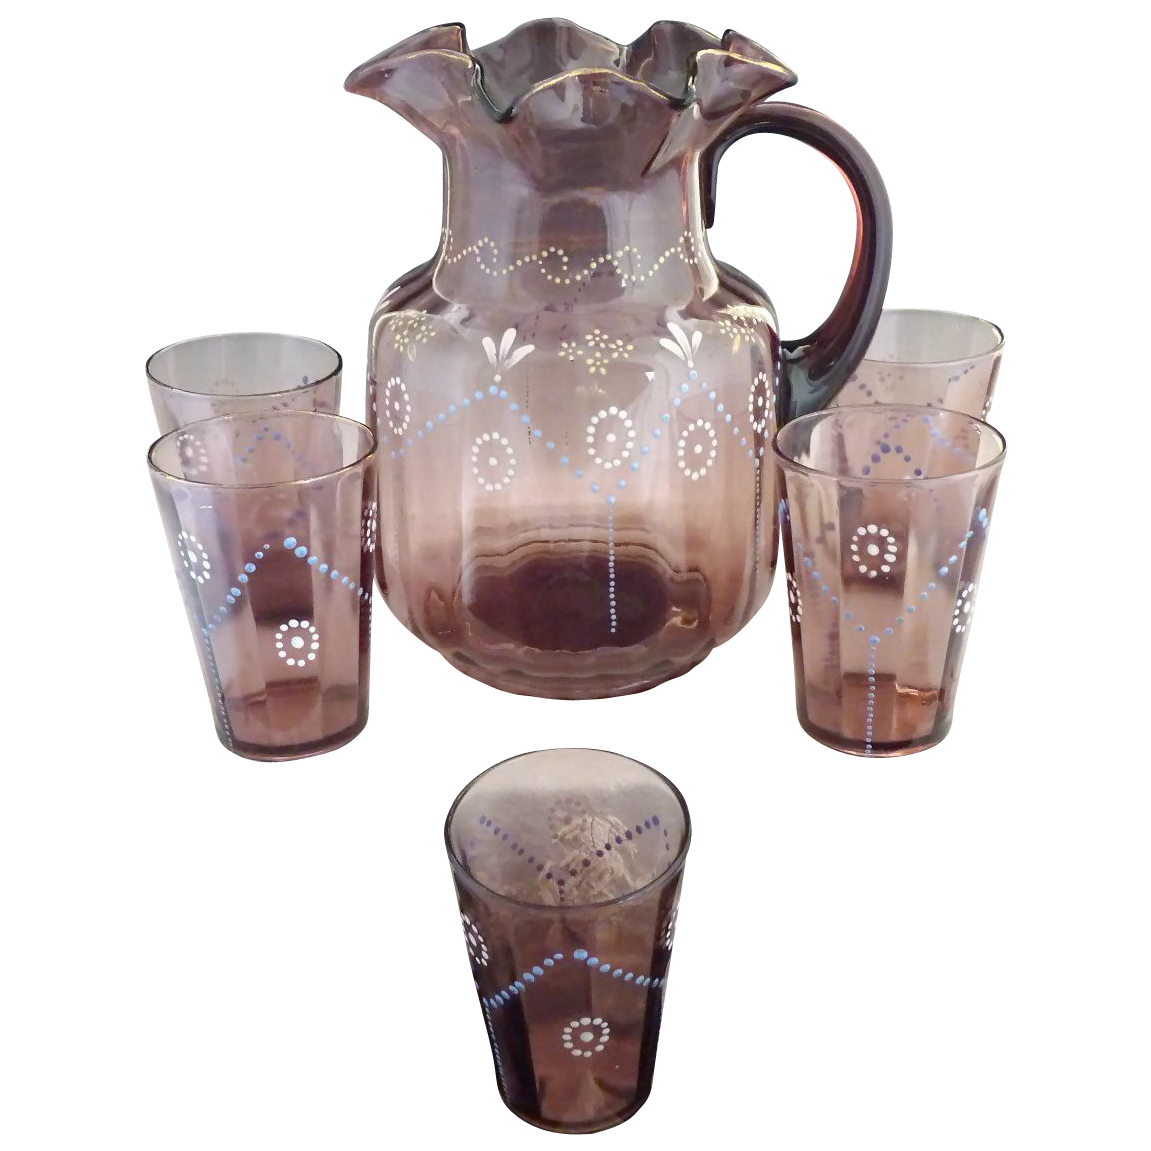 Antique amethyst glass pitcher glass set paneled hand enameling